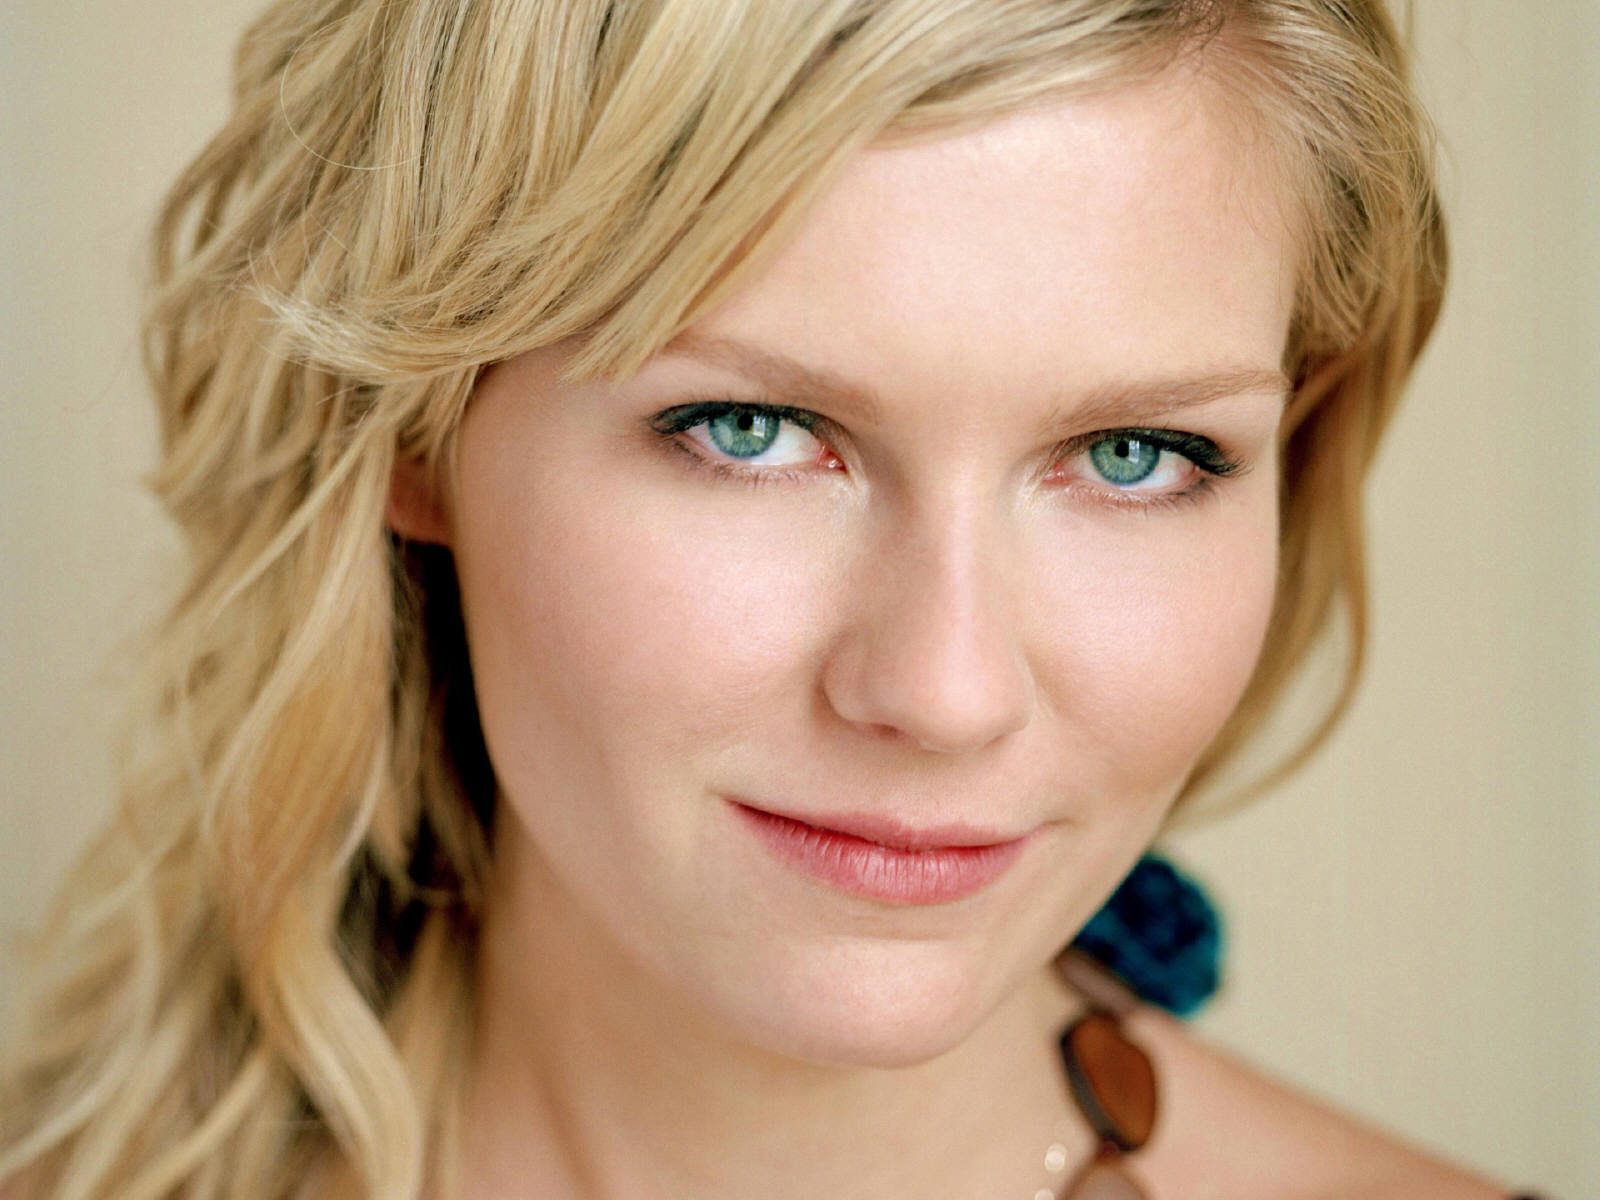 All Awares Kirsten Dunst Holly Wood Actress In Beautiful